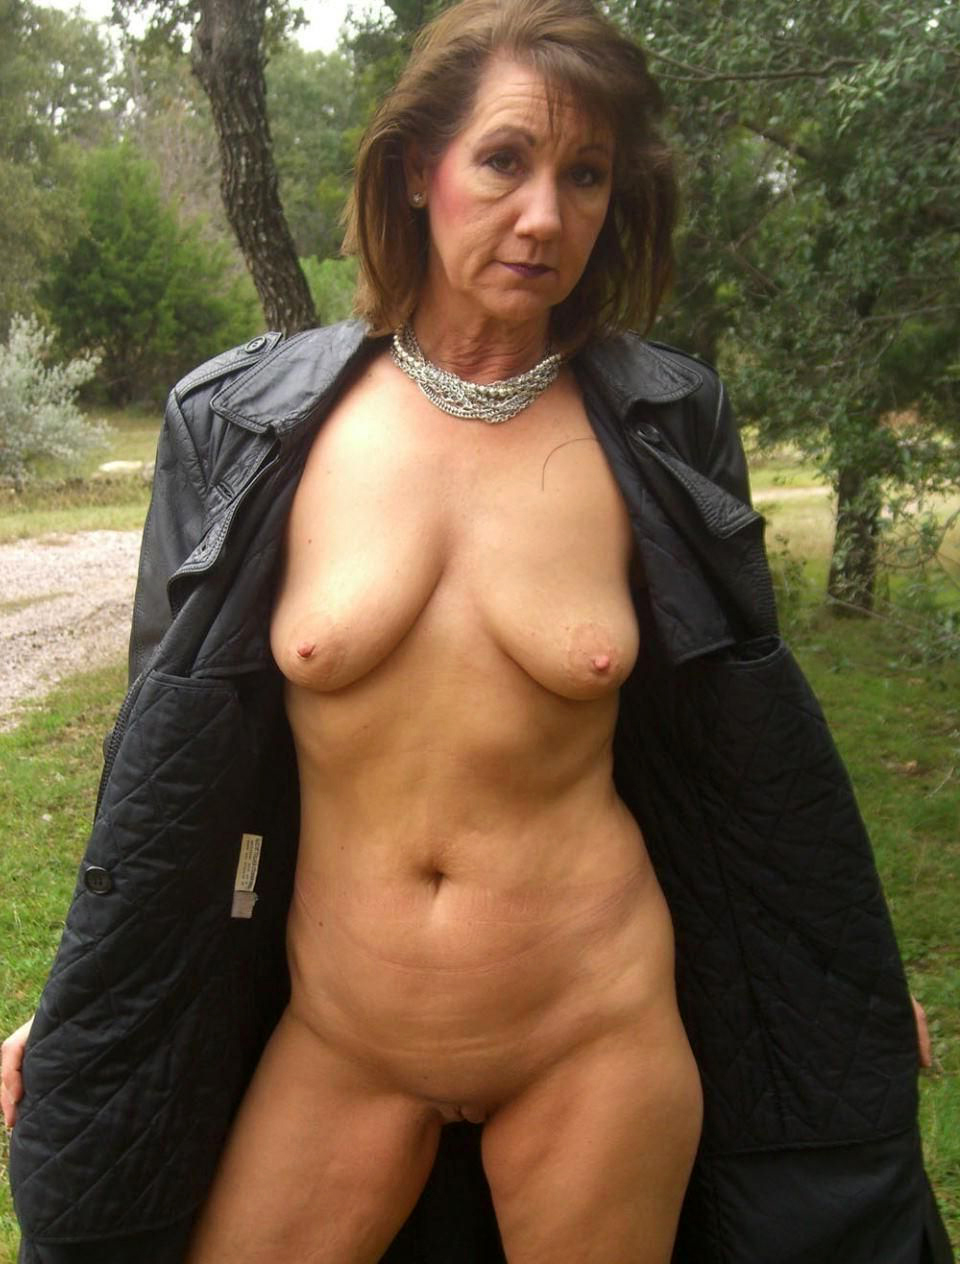 Real mature pussy pics